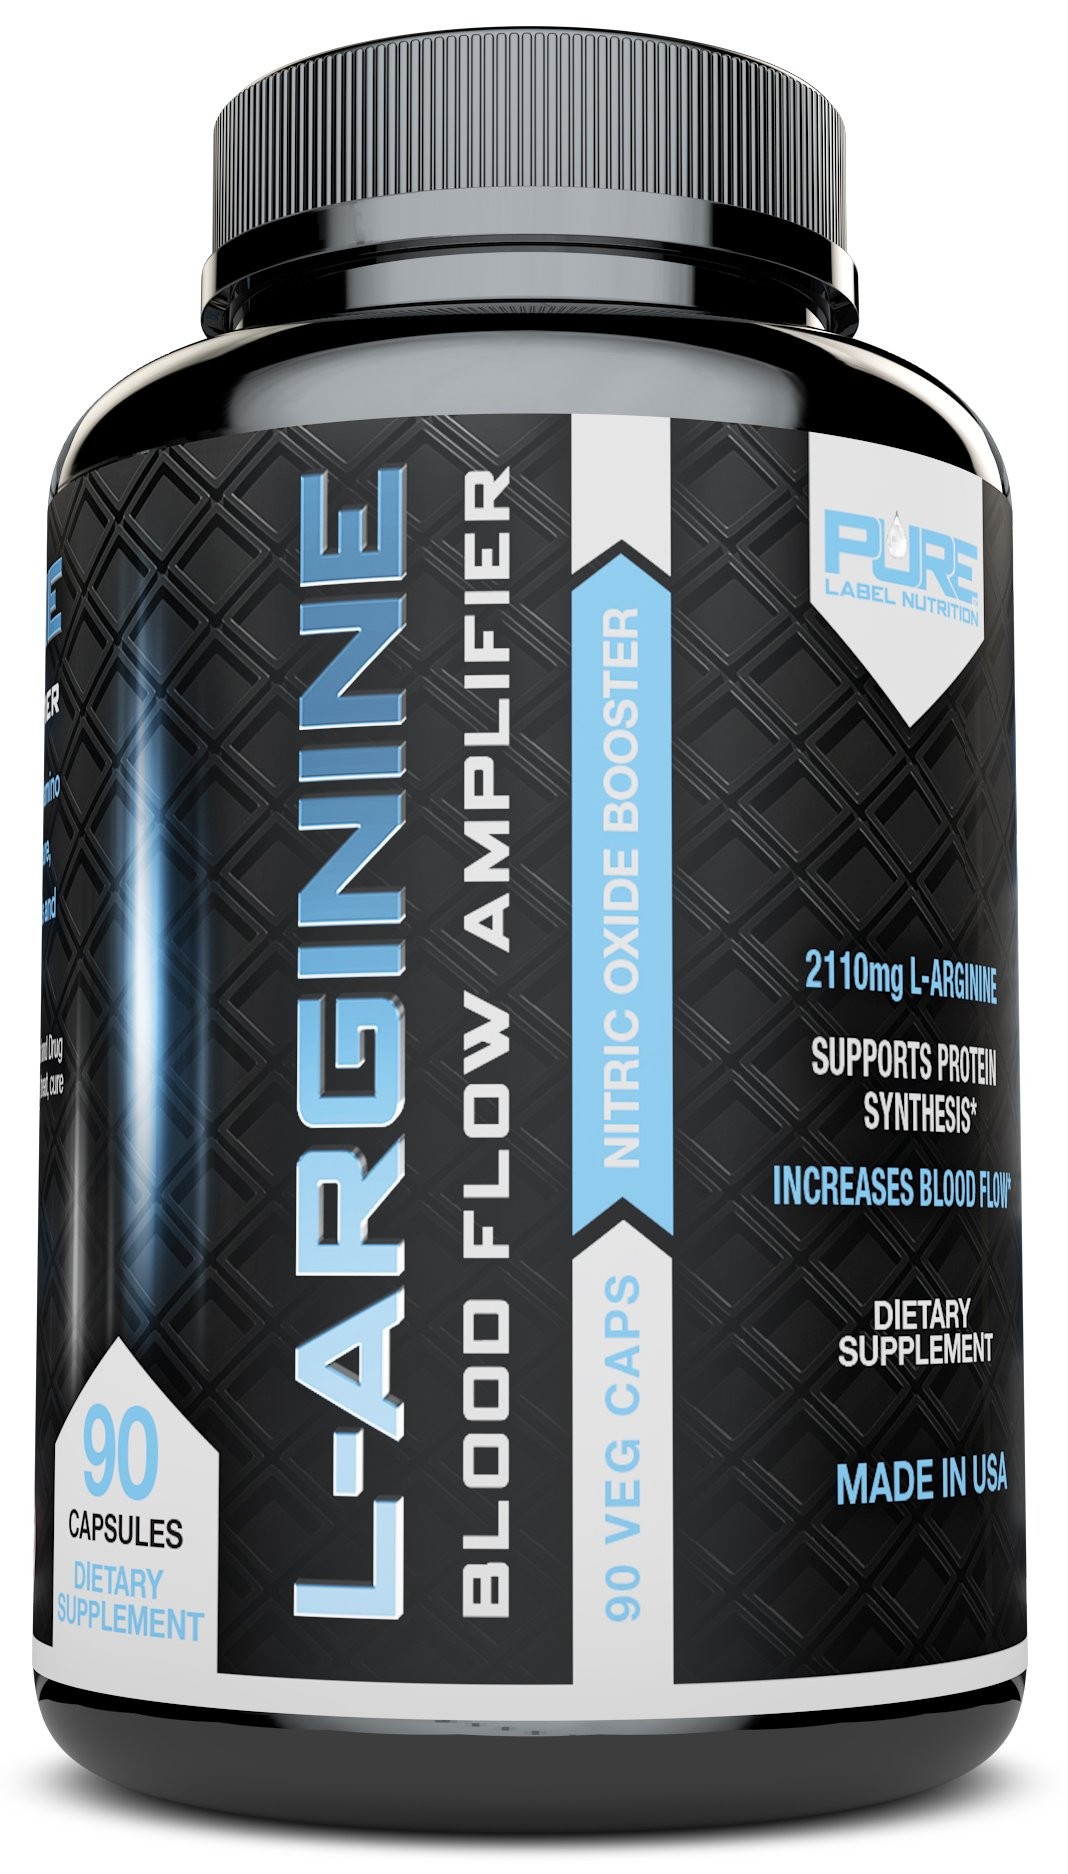 L-Arginine PURE-A 2110mg L Arginine Nitric Oxide Booster, Build Muscle Increase Strength and Boost Sex Drive - Best Purest Arginine + Top Rated - Most Effective Dose for Men and Women - MADE IN USA  90 capsules